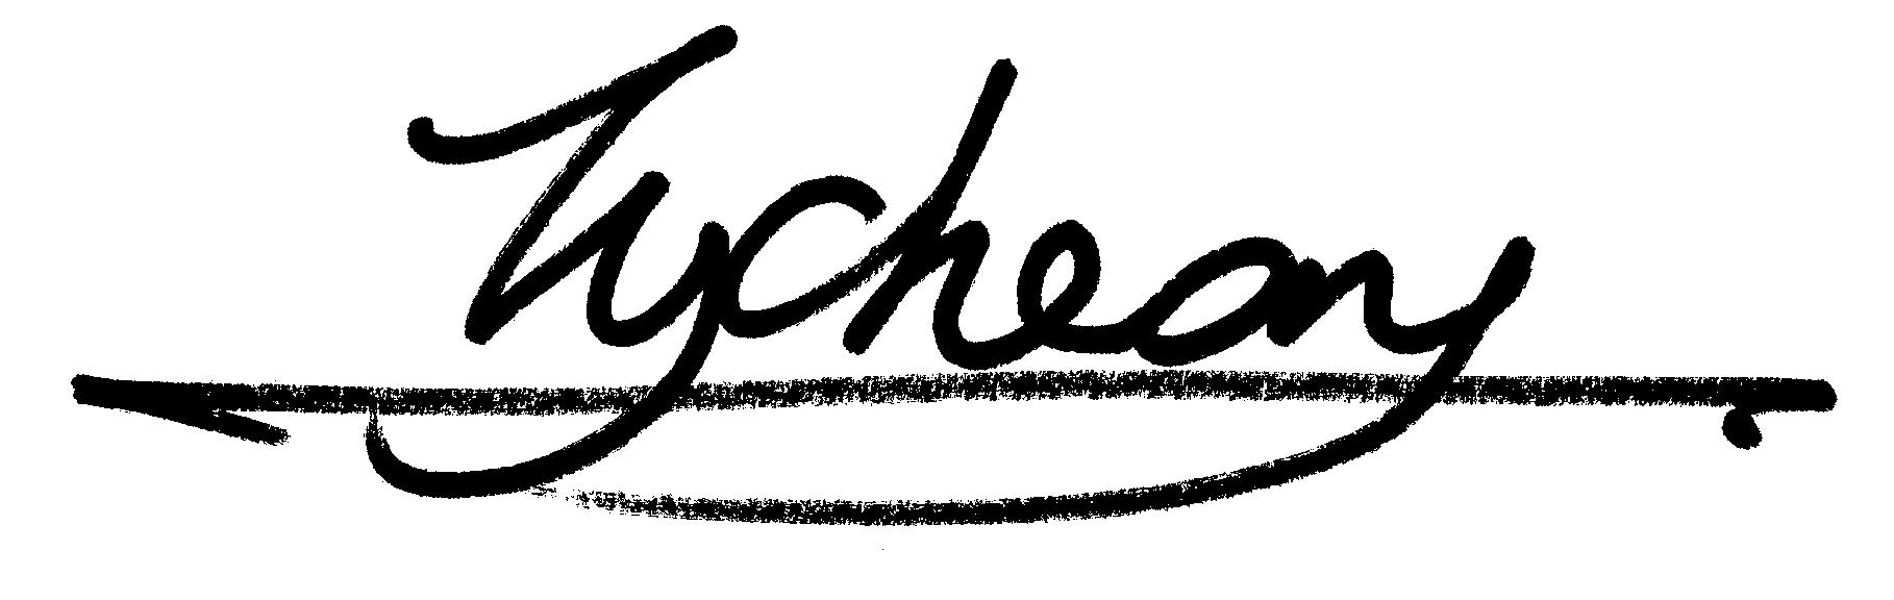 Tuckwai Cheong Signature